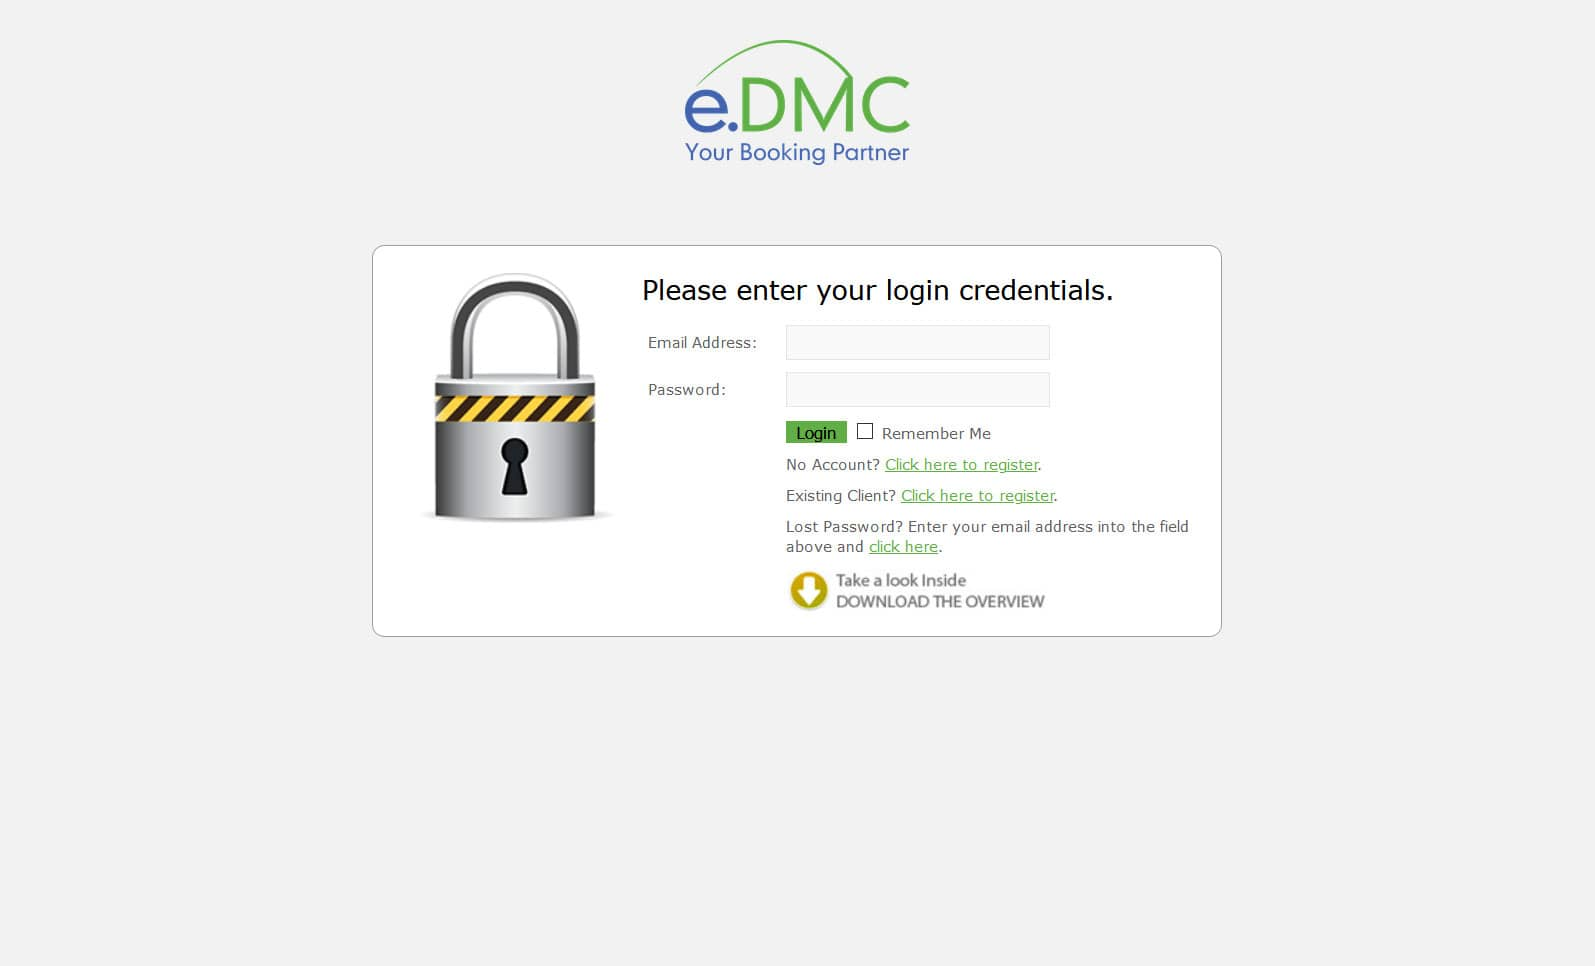 Travel Booking Platform Login Screen - e.DMC